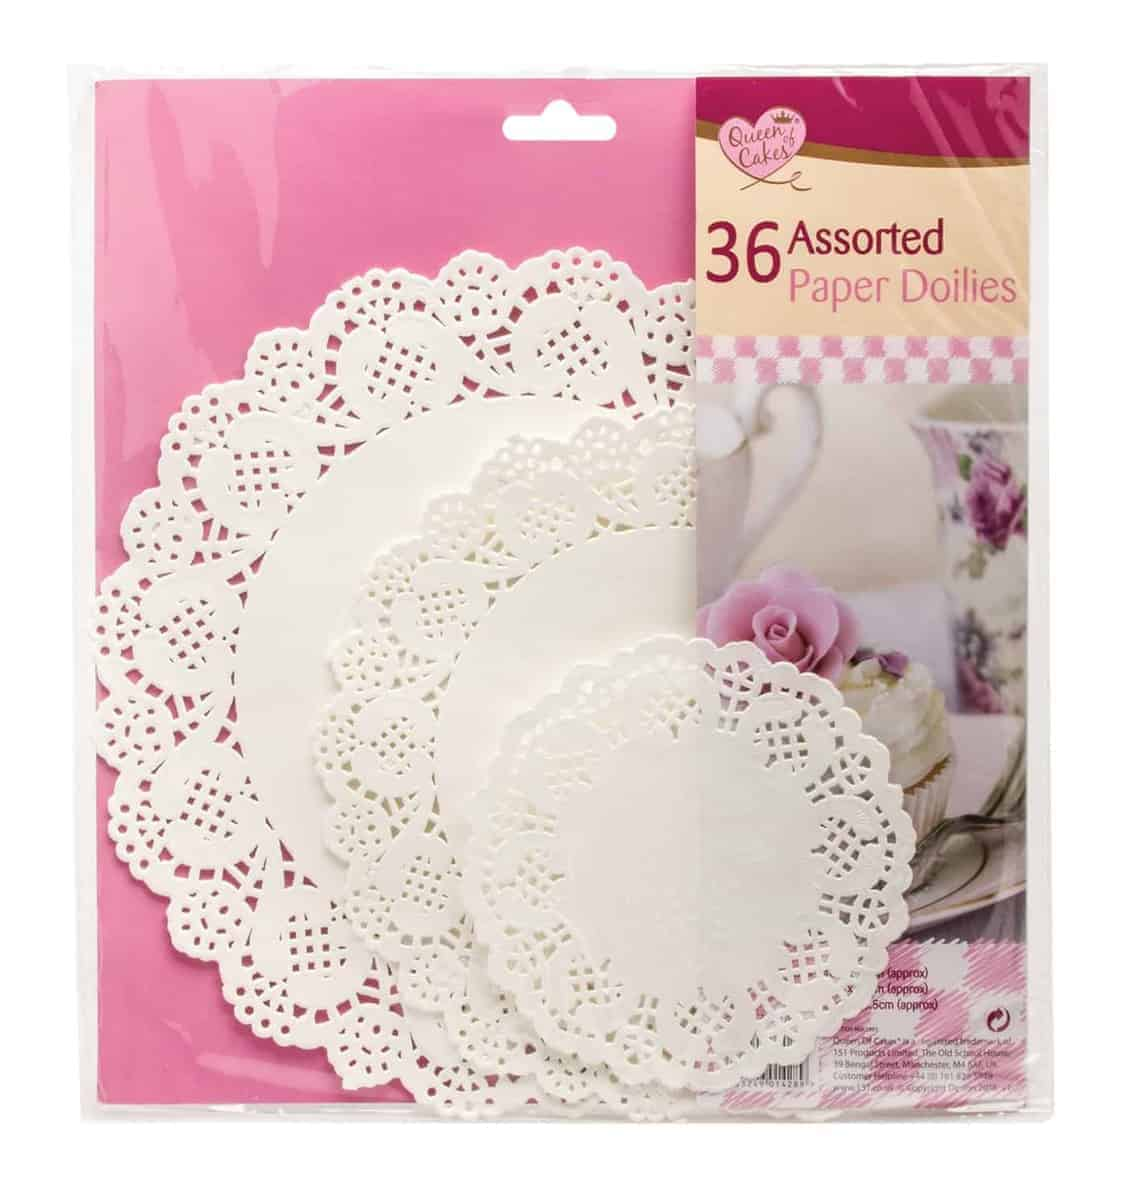 Queen Of Cakes 36 Assorted Paper Doilies